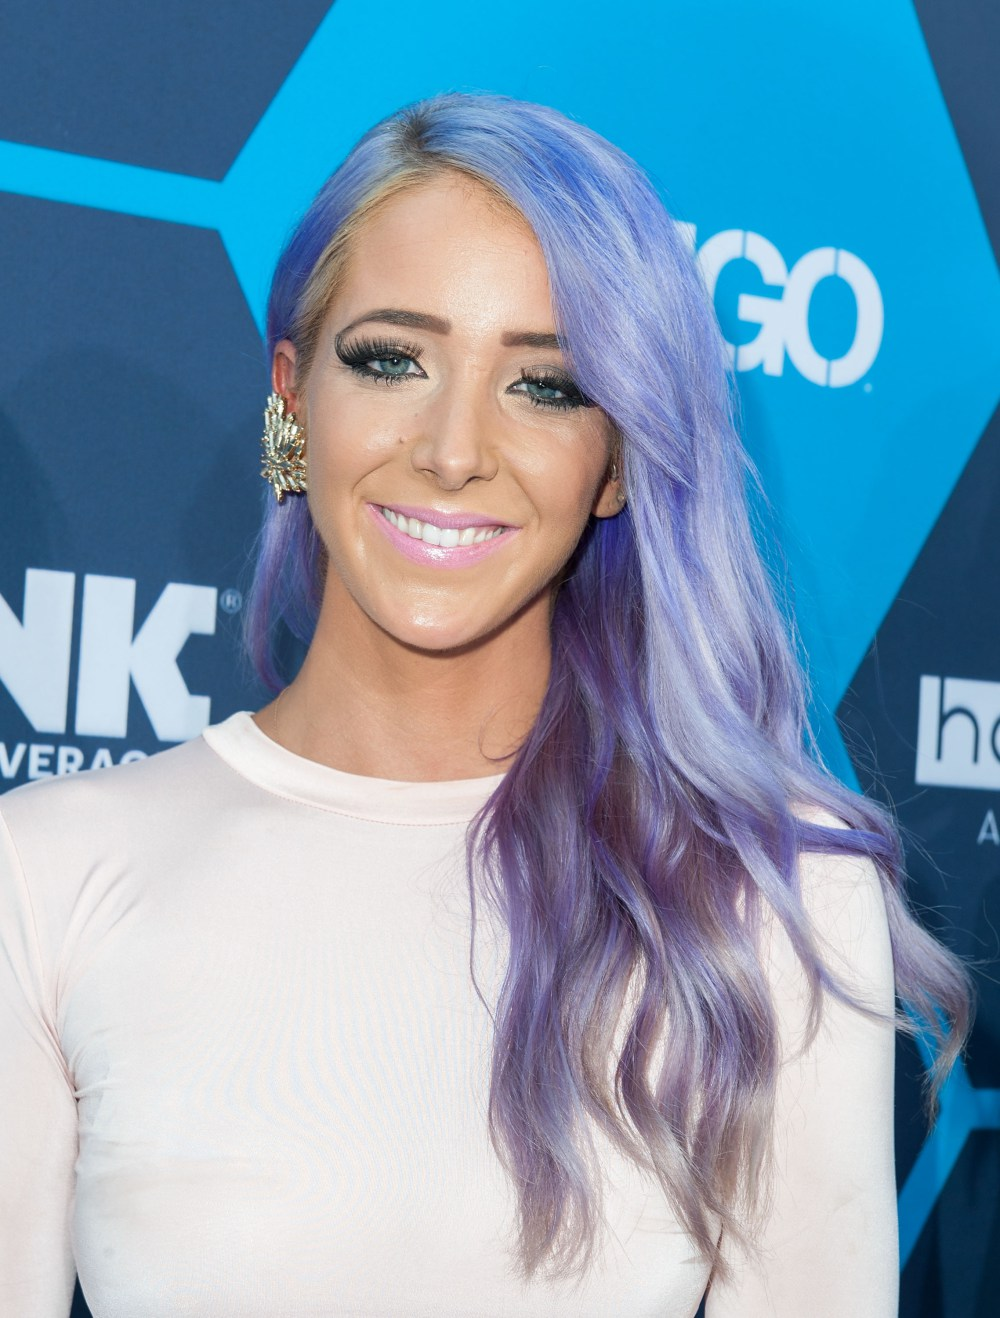 Web Video Star Jenna Marbles - age: 30